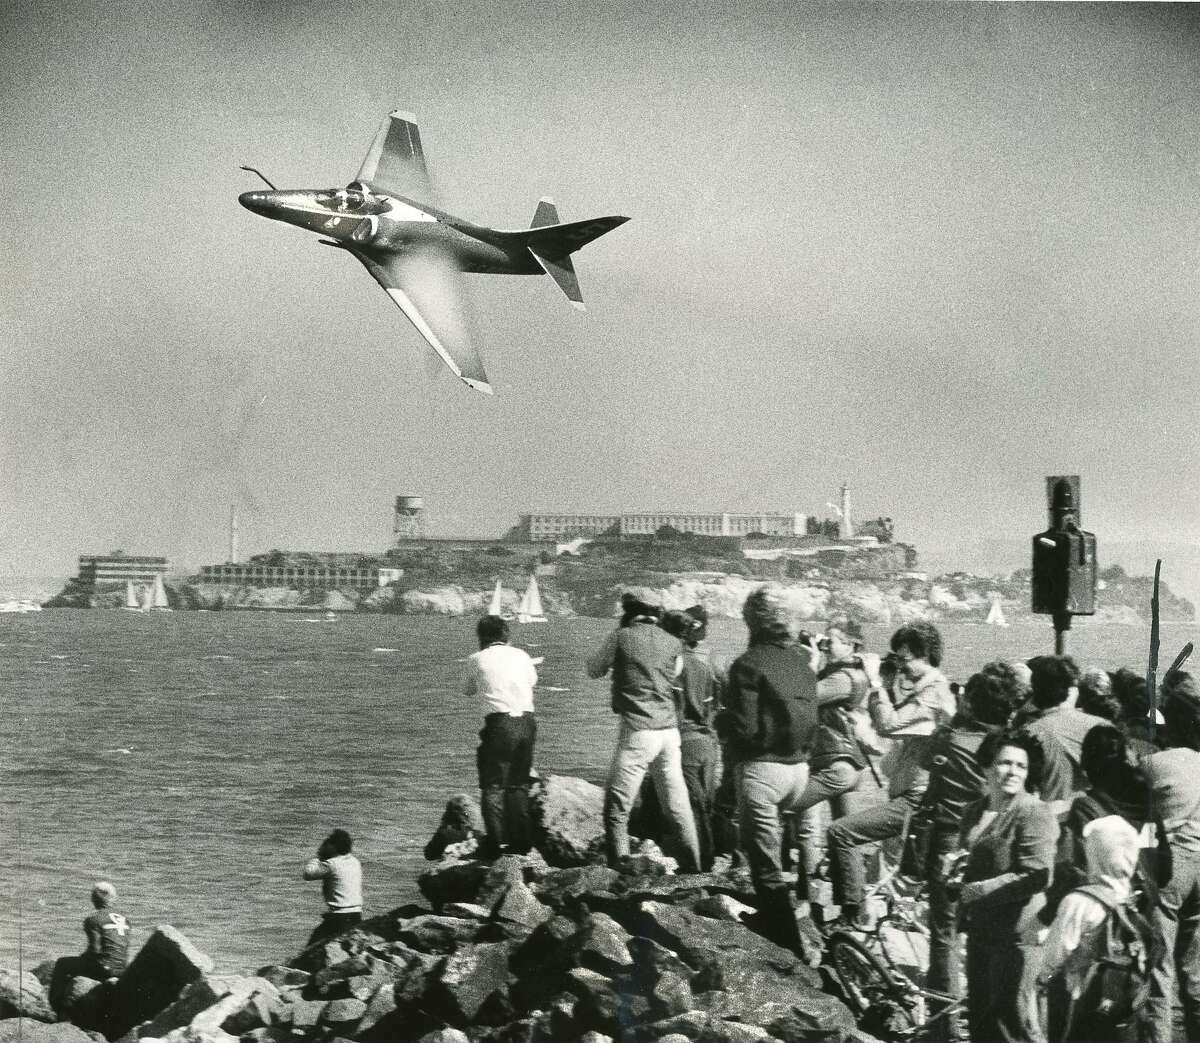 Oct. 13, 1983: The Blue Angels fly by a crowd at the St. Francis Yacht Club jetty during the team's 1983 visit.